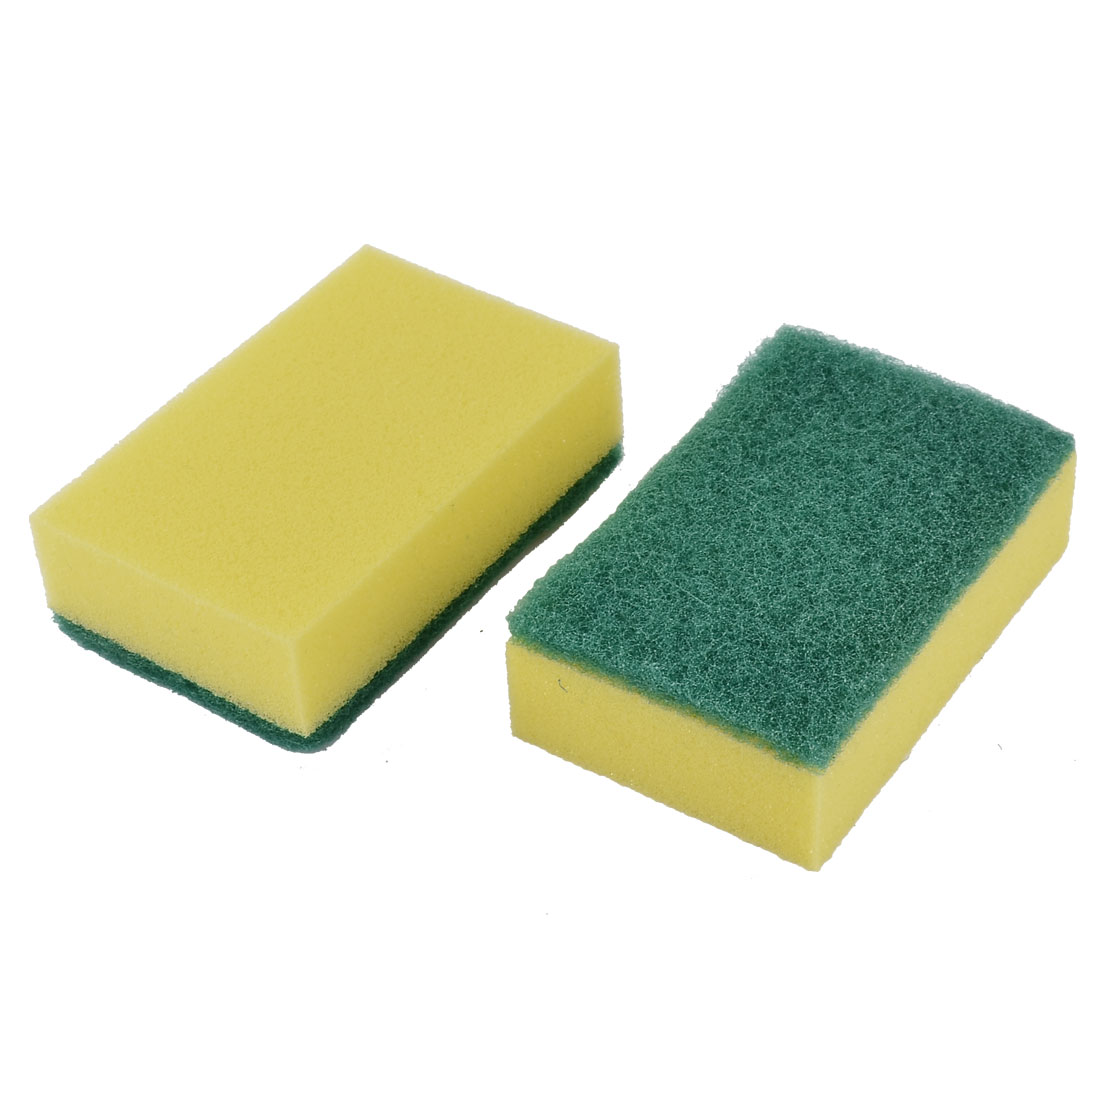 Home Kitchenware Cleaner Bowl Washing Sponge Scouring Dish Cleaning Pads Yellow Green 2pcs